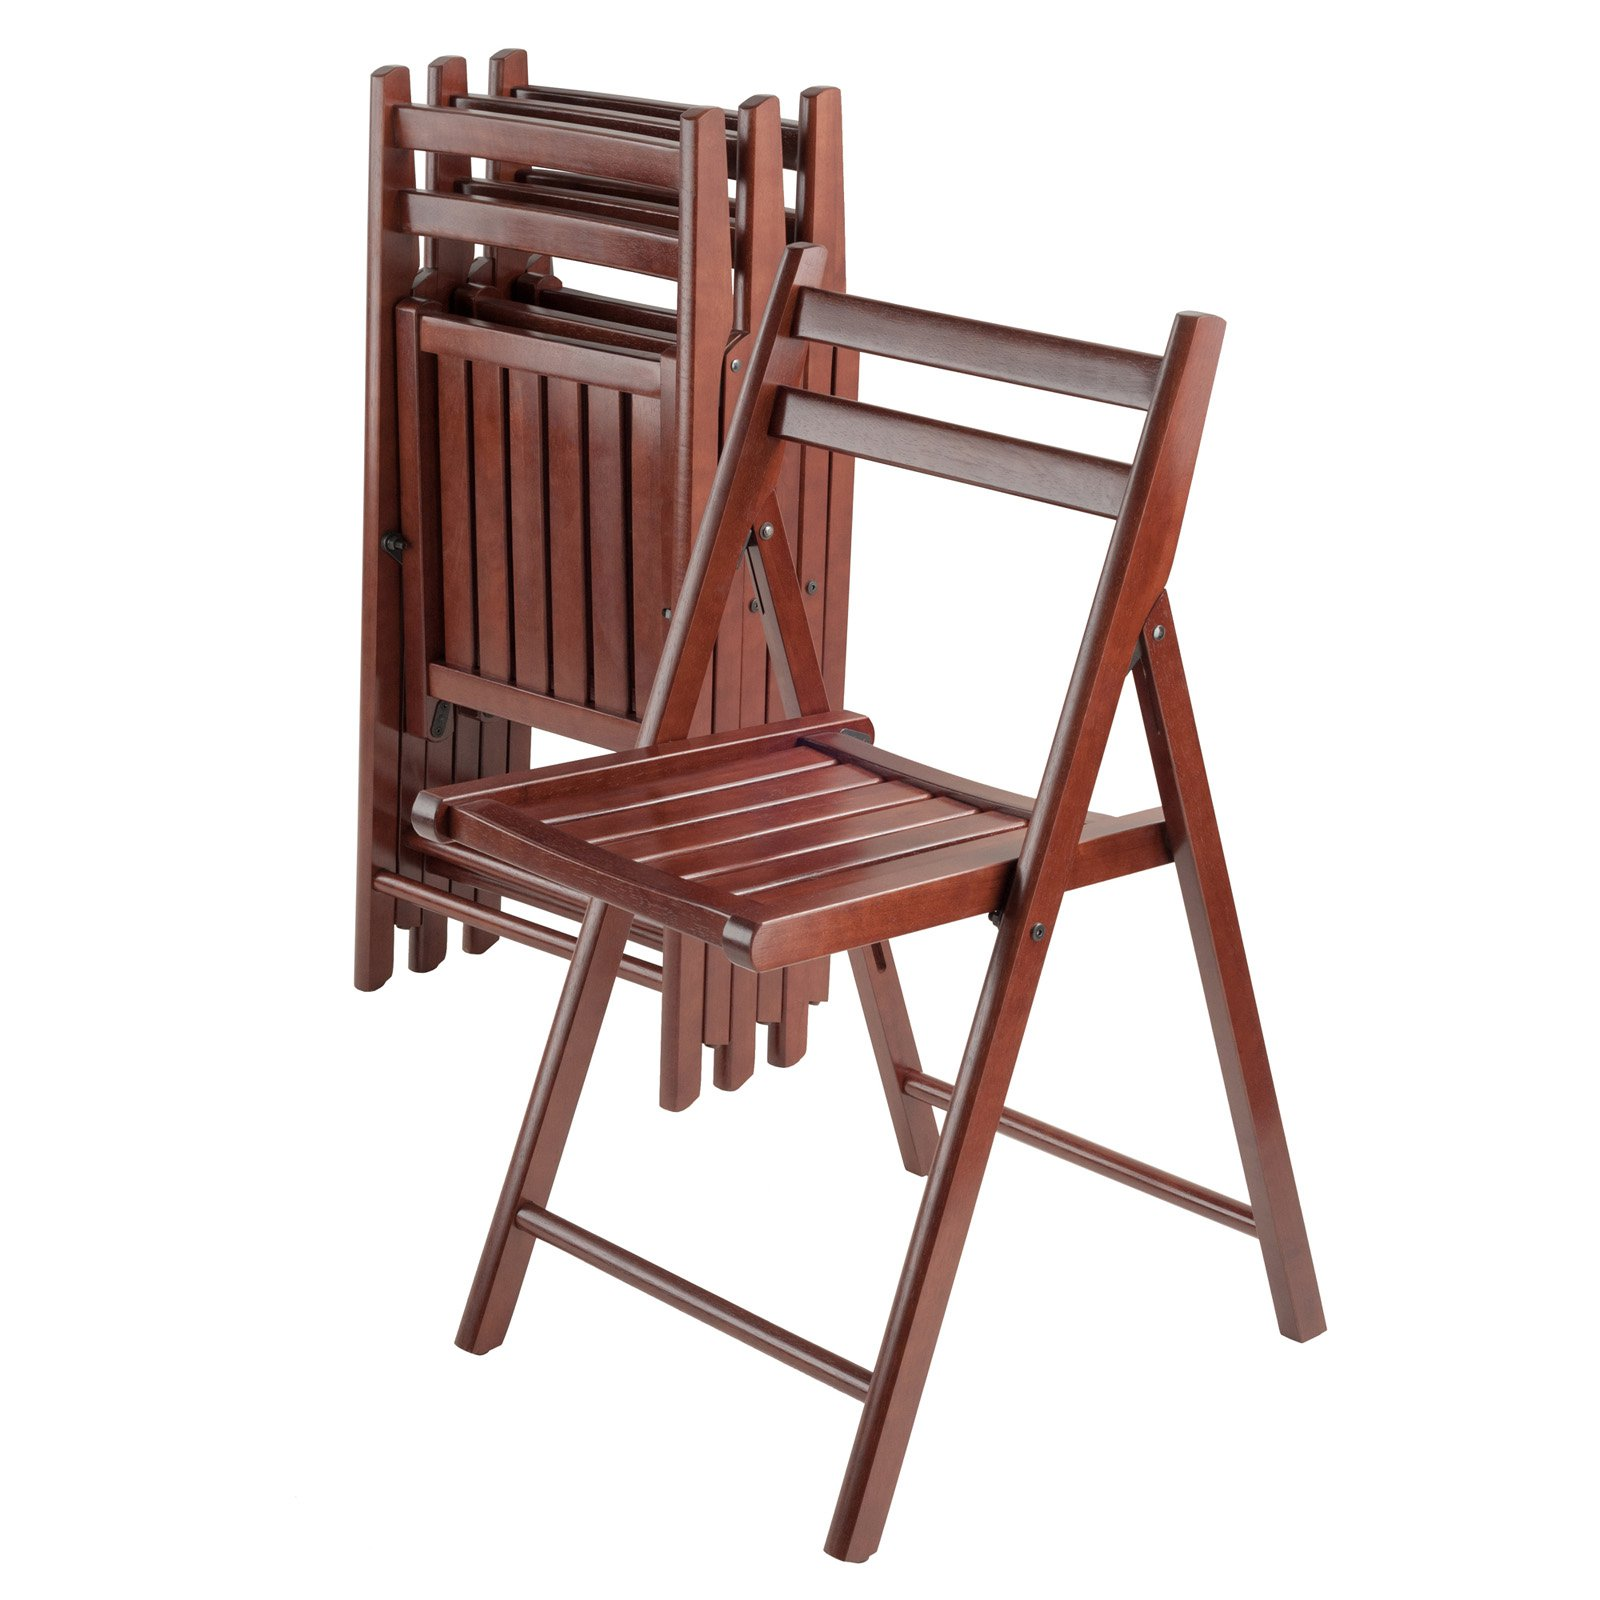 Set of 4 Folding Chairs, Walnut